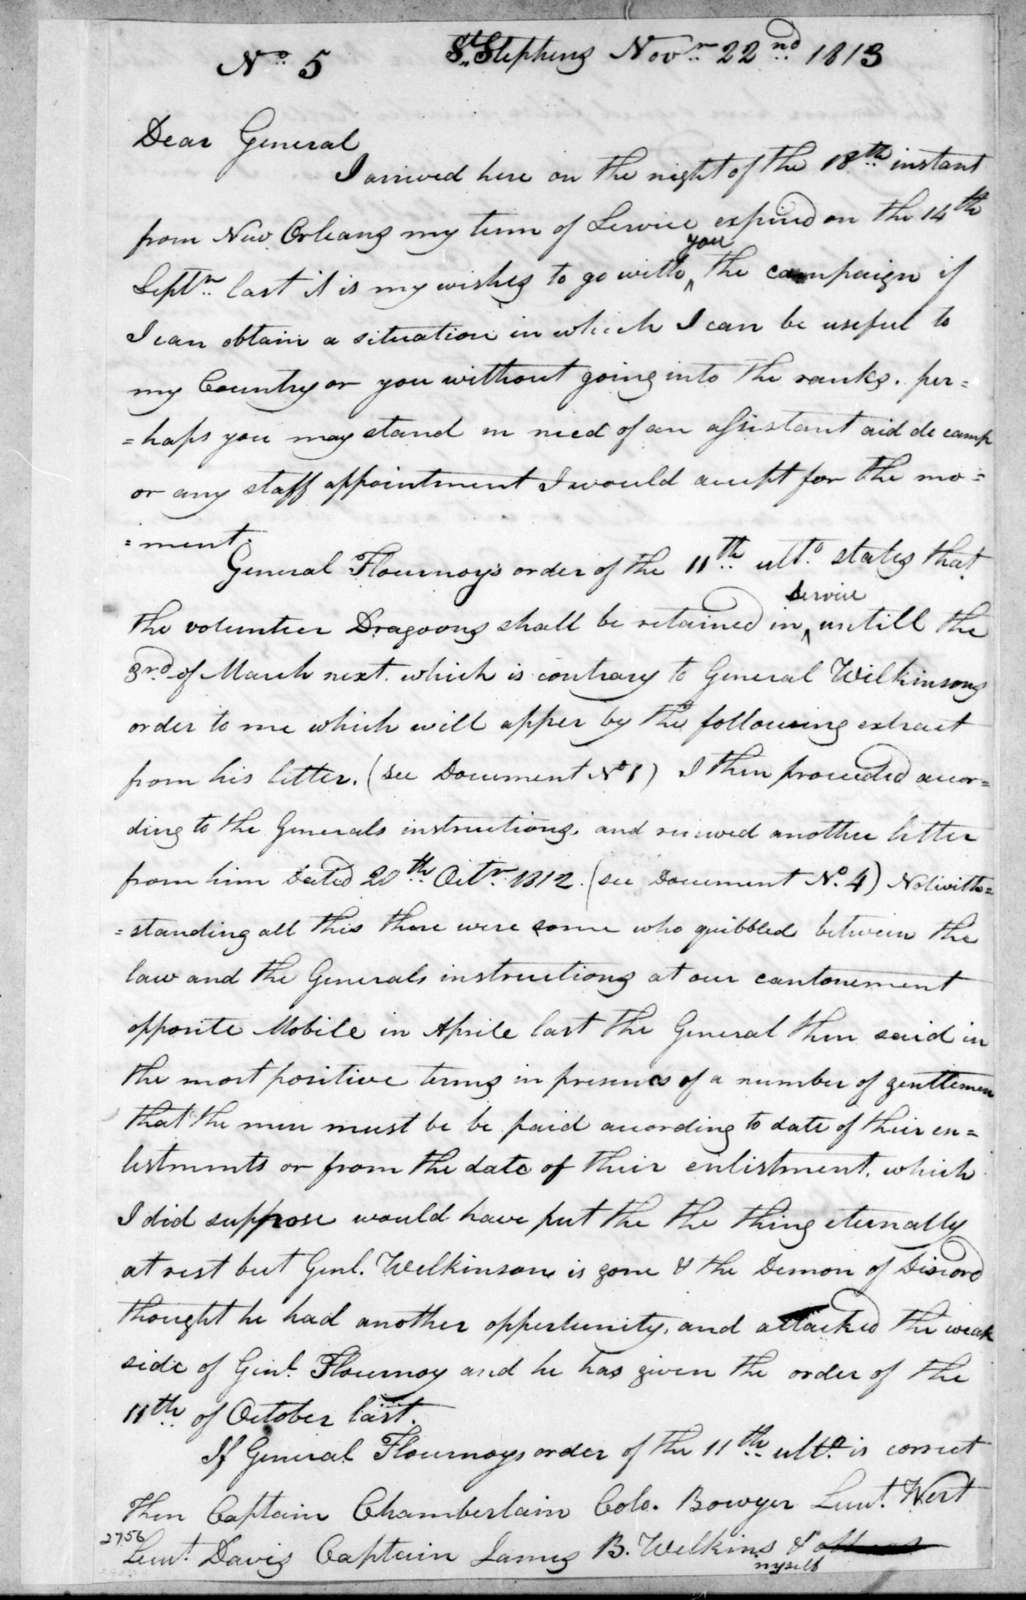 William Henry to Unknown, November 22, 1813